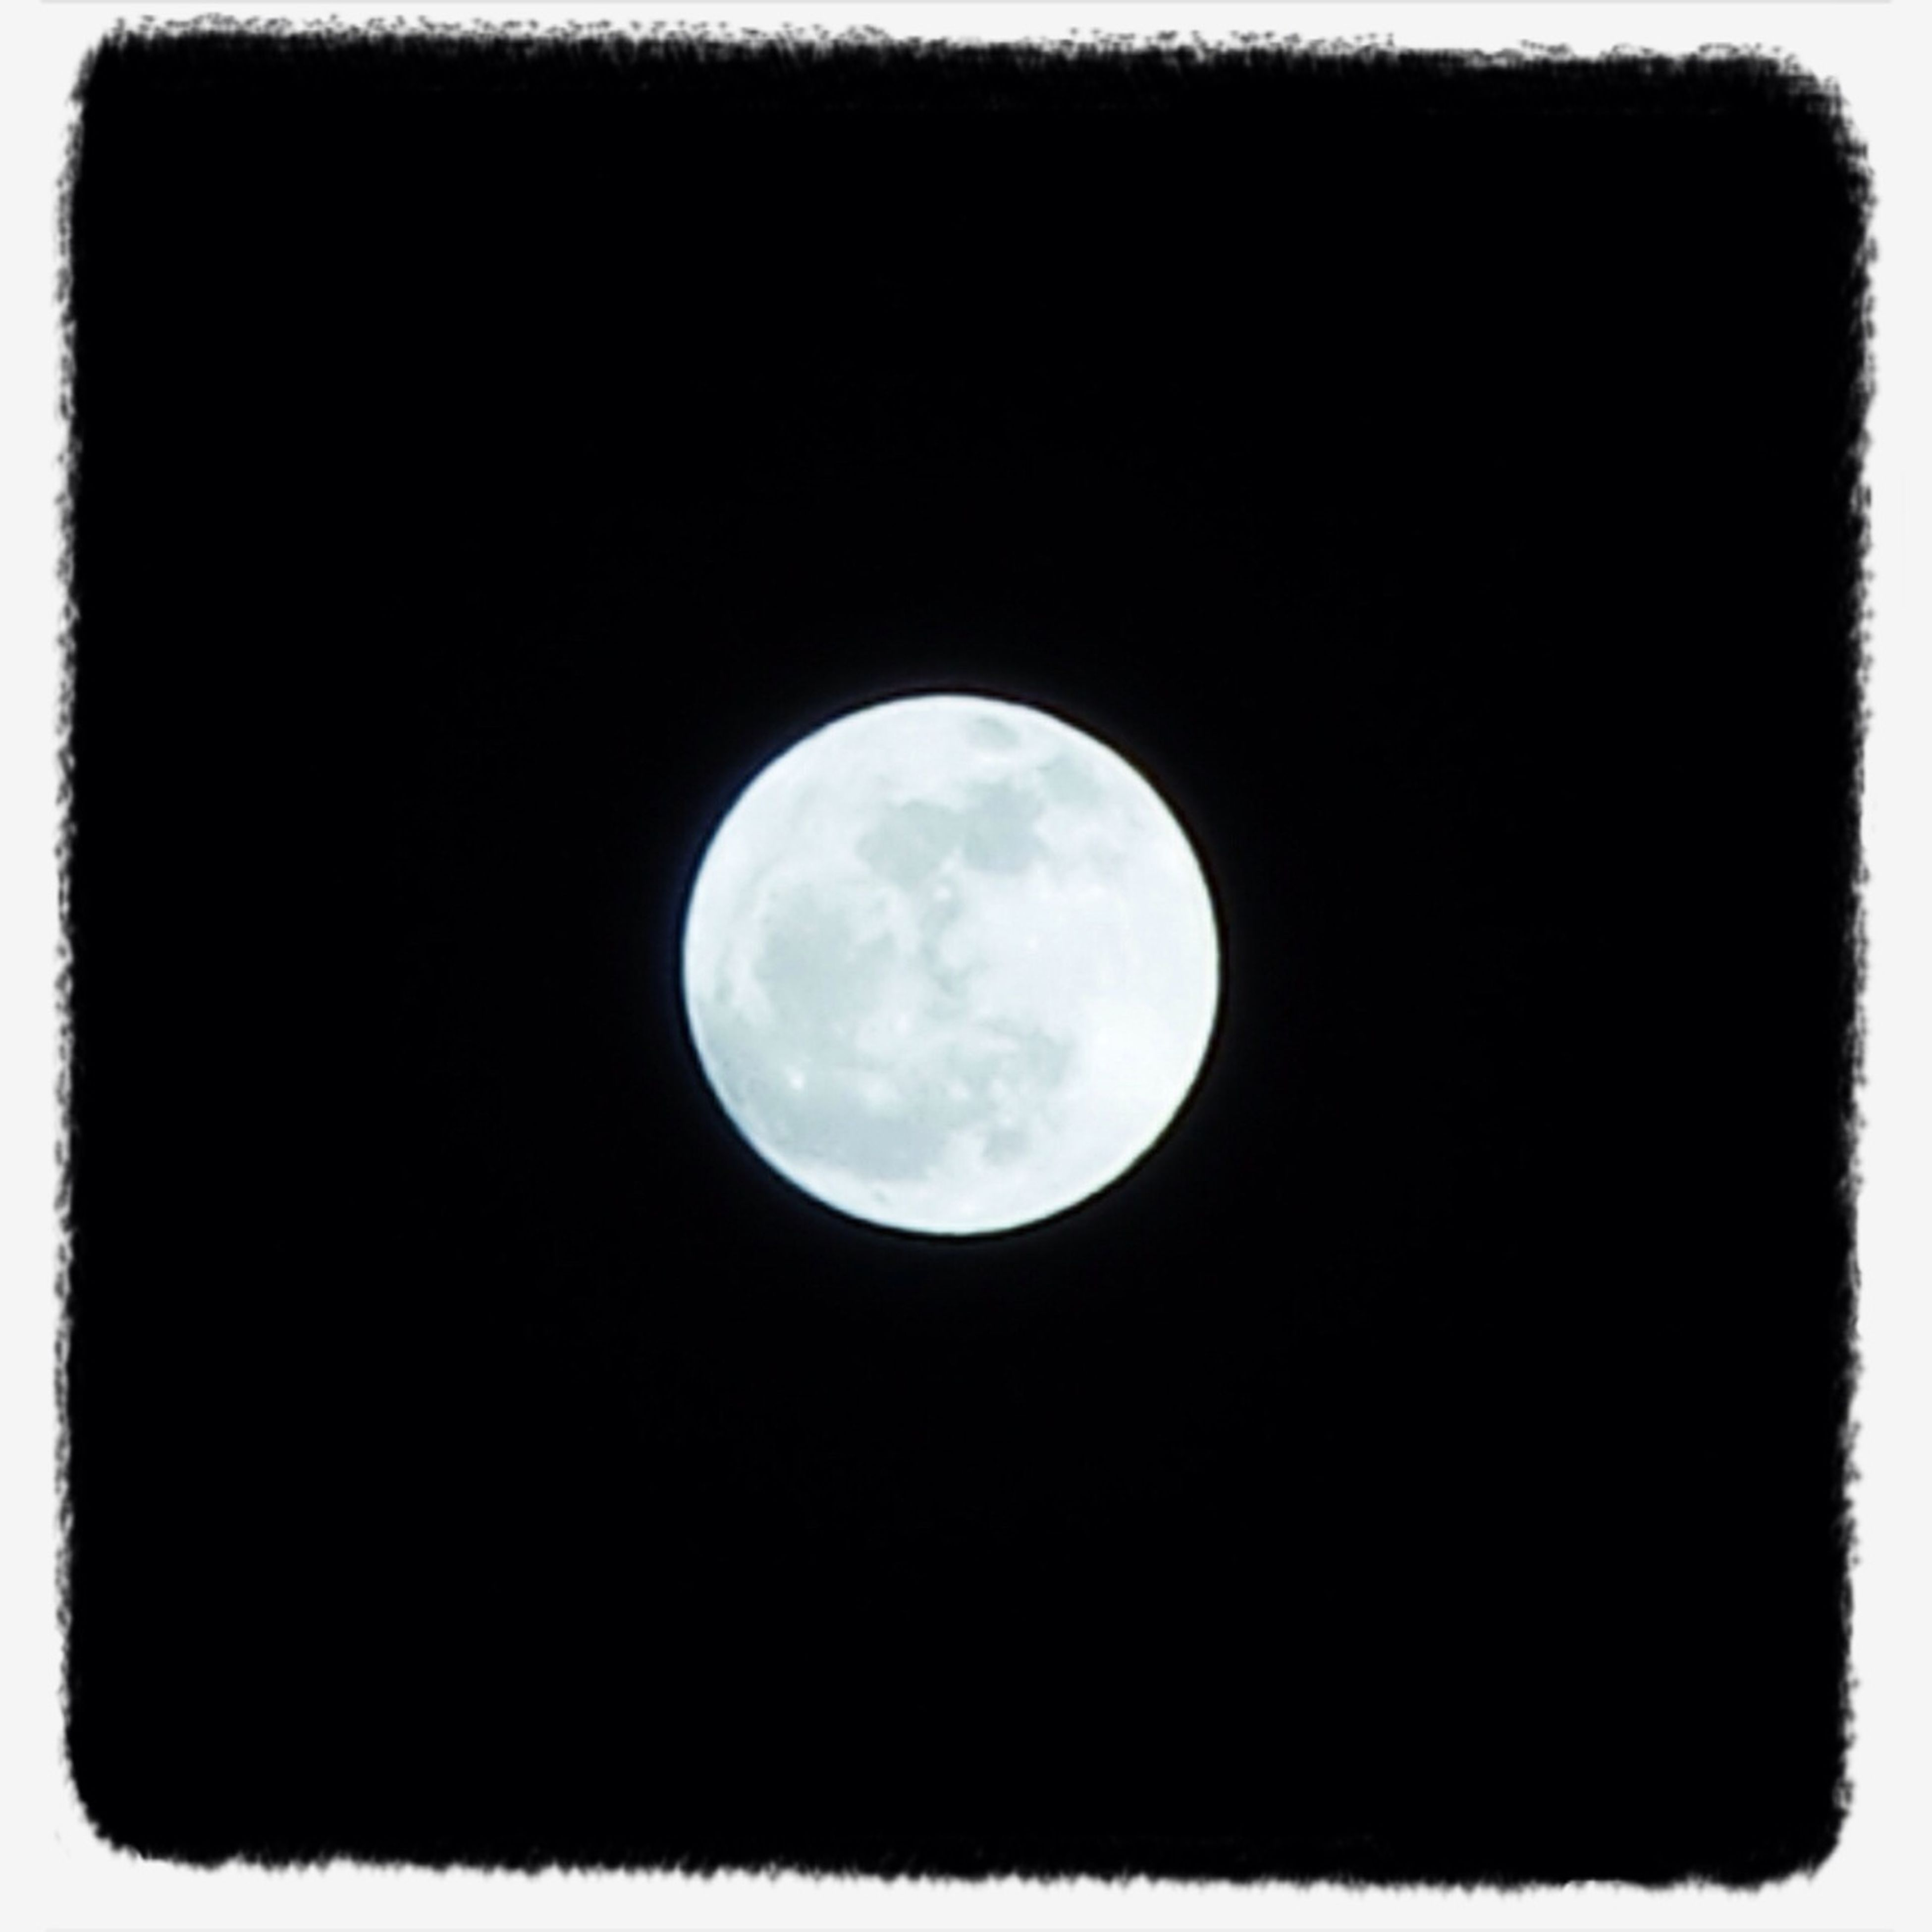 moon, astronomy, circle, night, transfer print, sky, planetary moon, full moon, low angle view, dark, beauty in nature, nature, scenics, moon surface, tranquility, tranquil scene, space exploration, discovery, auto post production filter, copy space